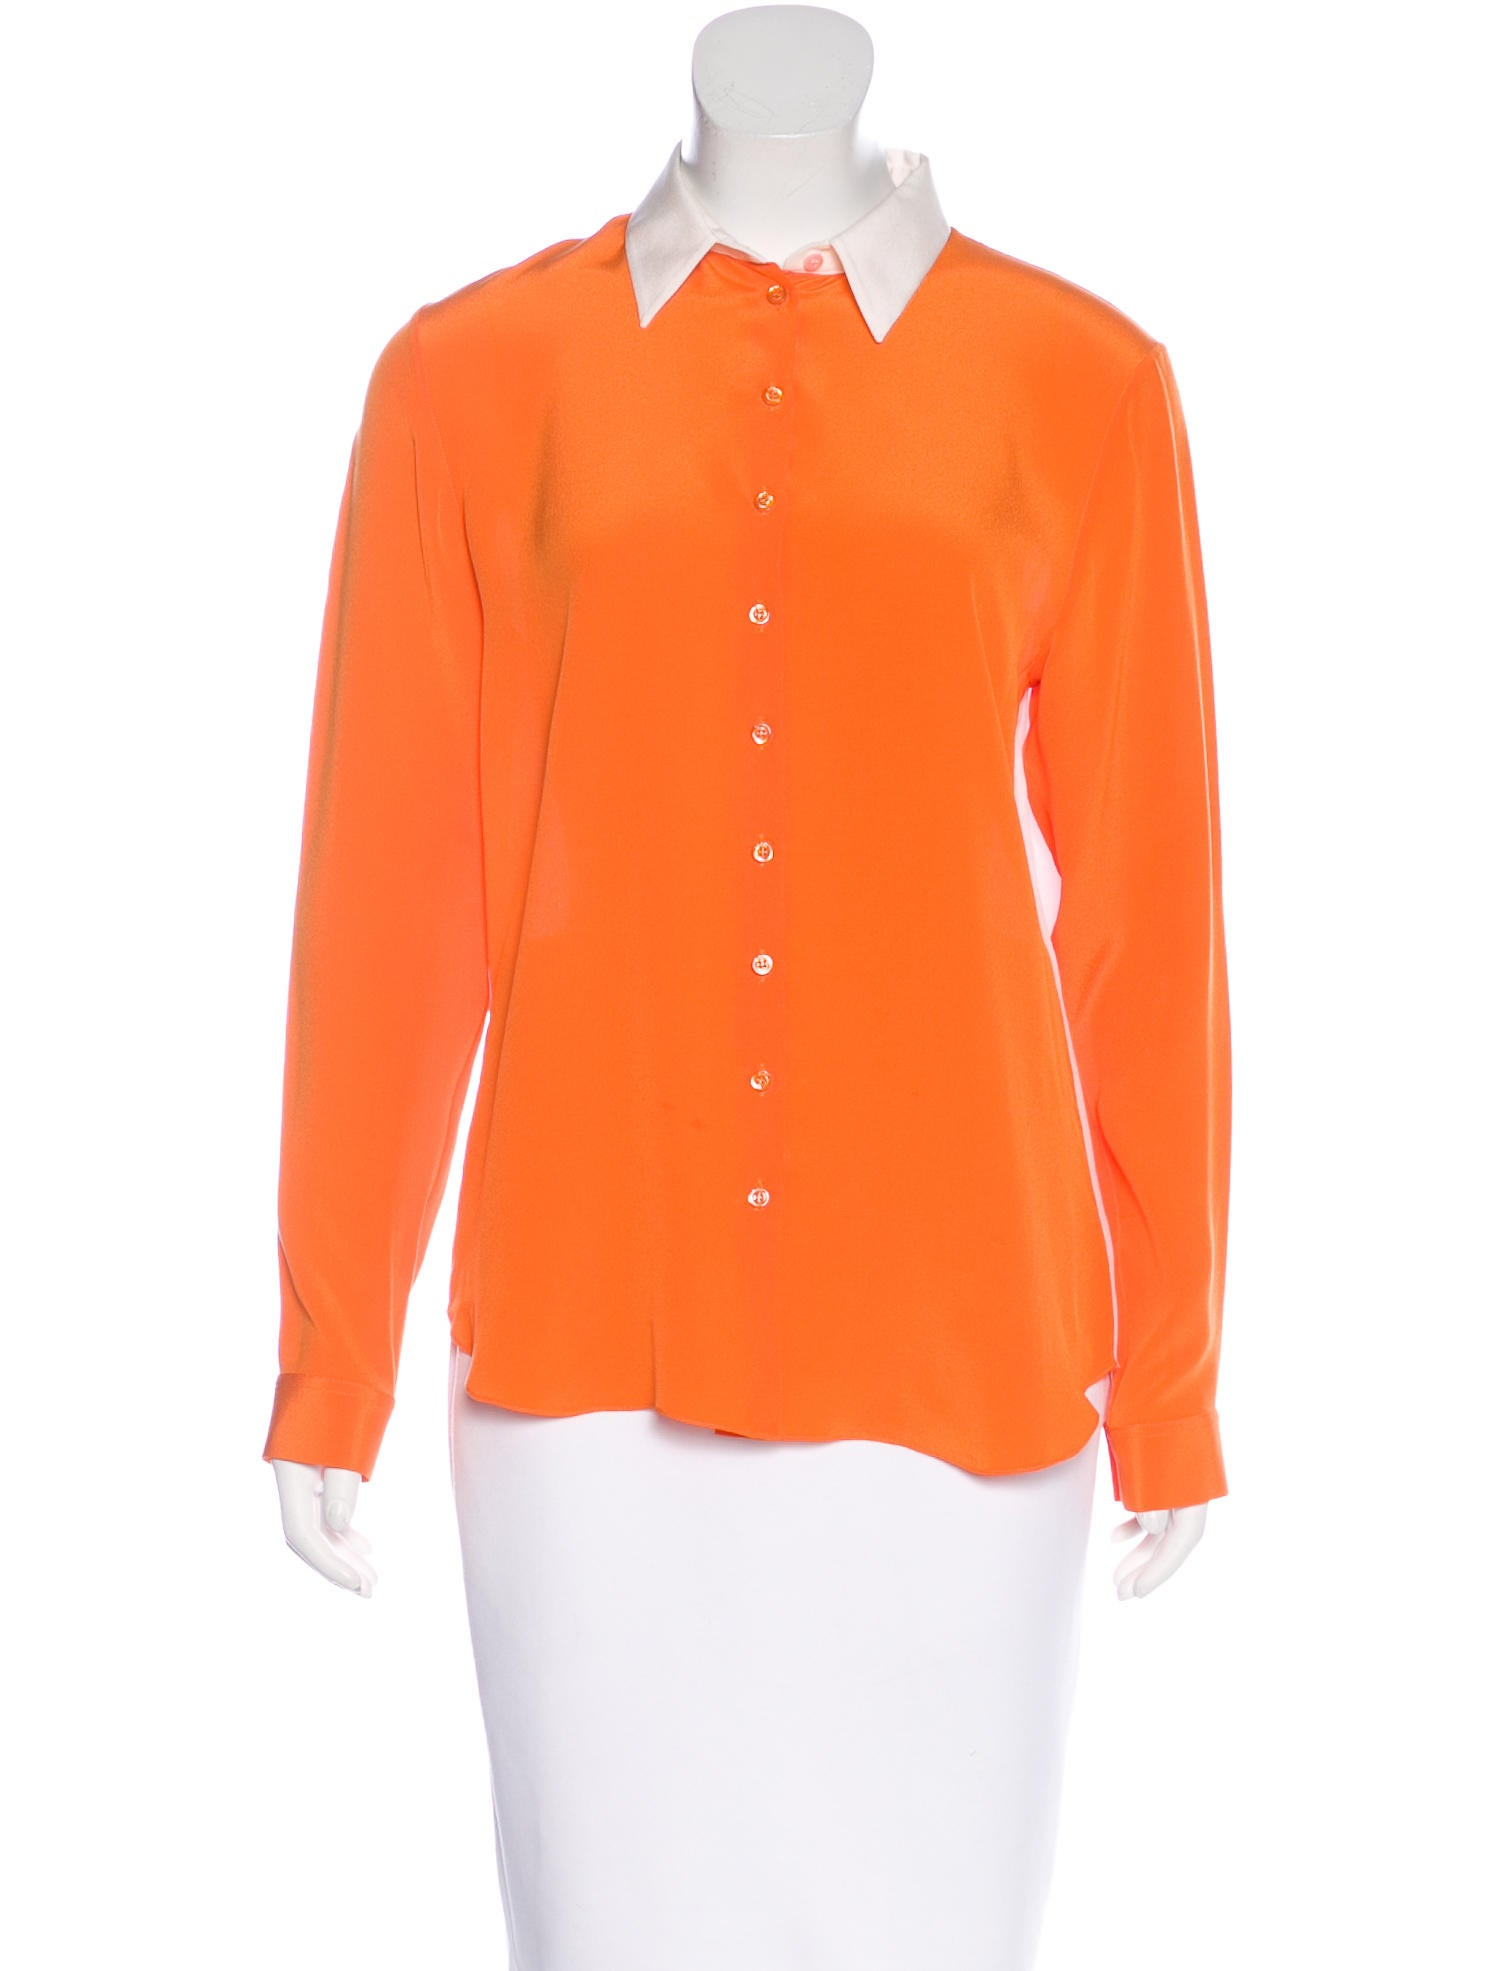 Christian dior colorblock button up top clothing for Christian dior button up shirt